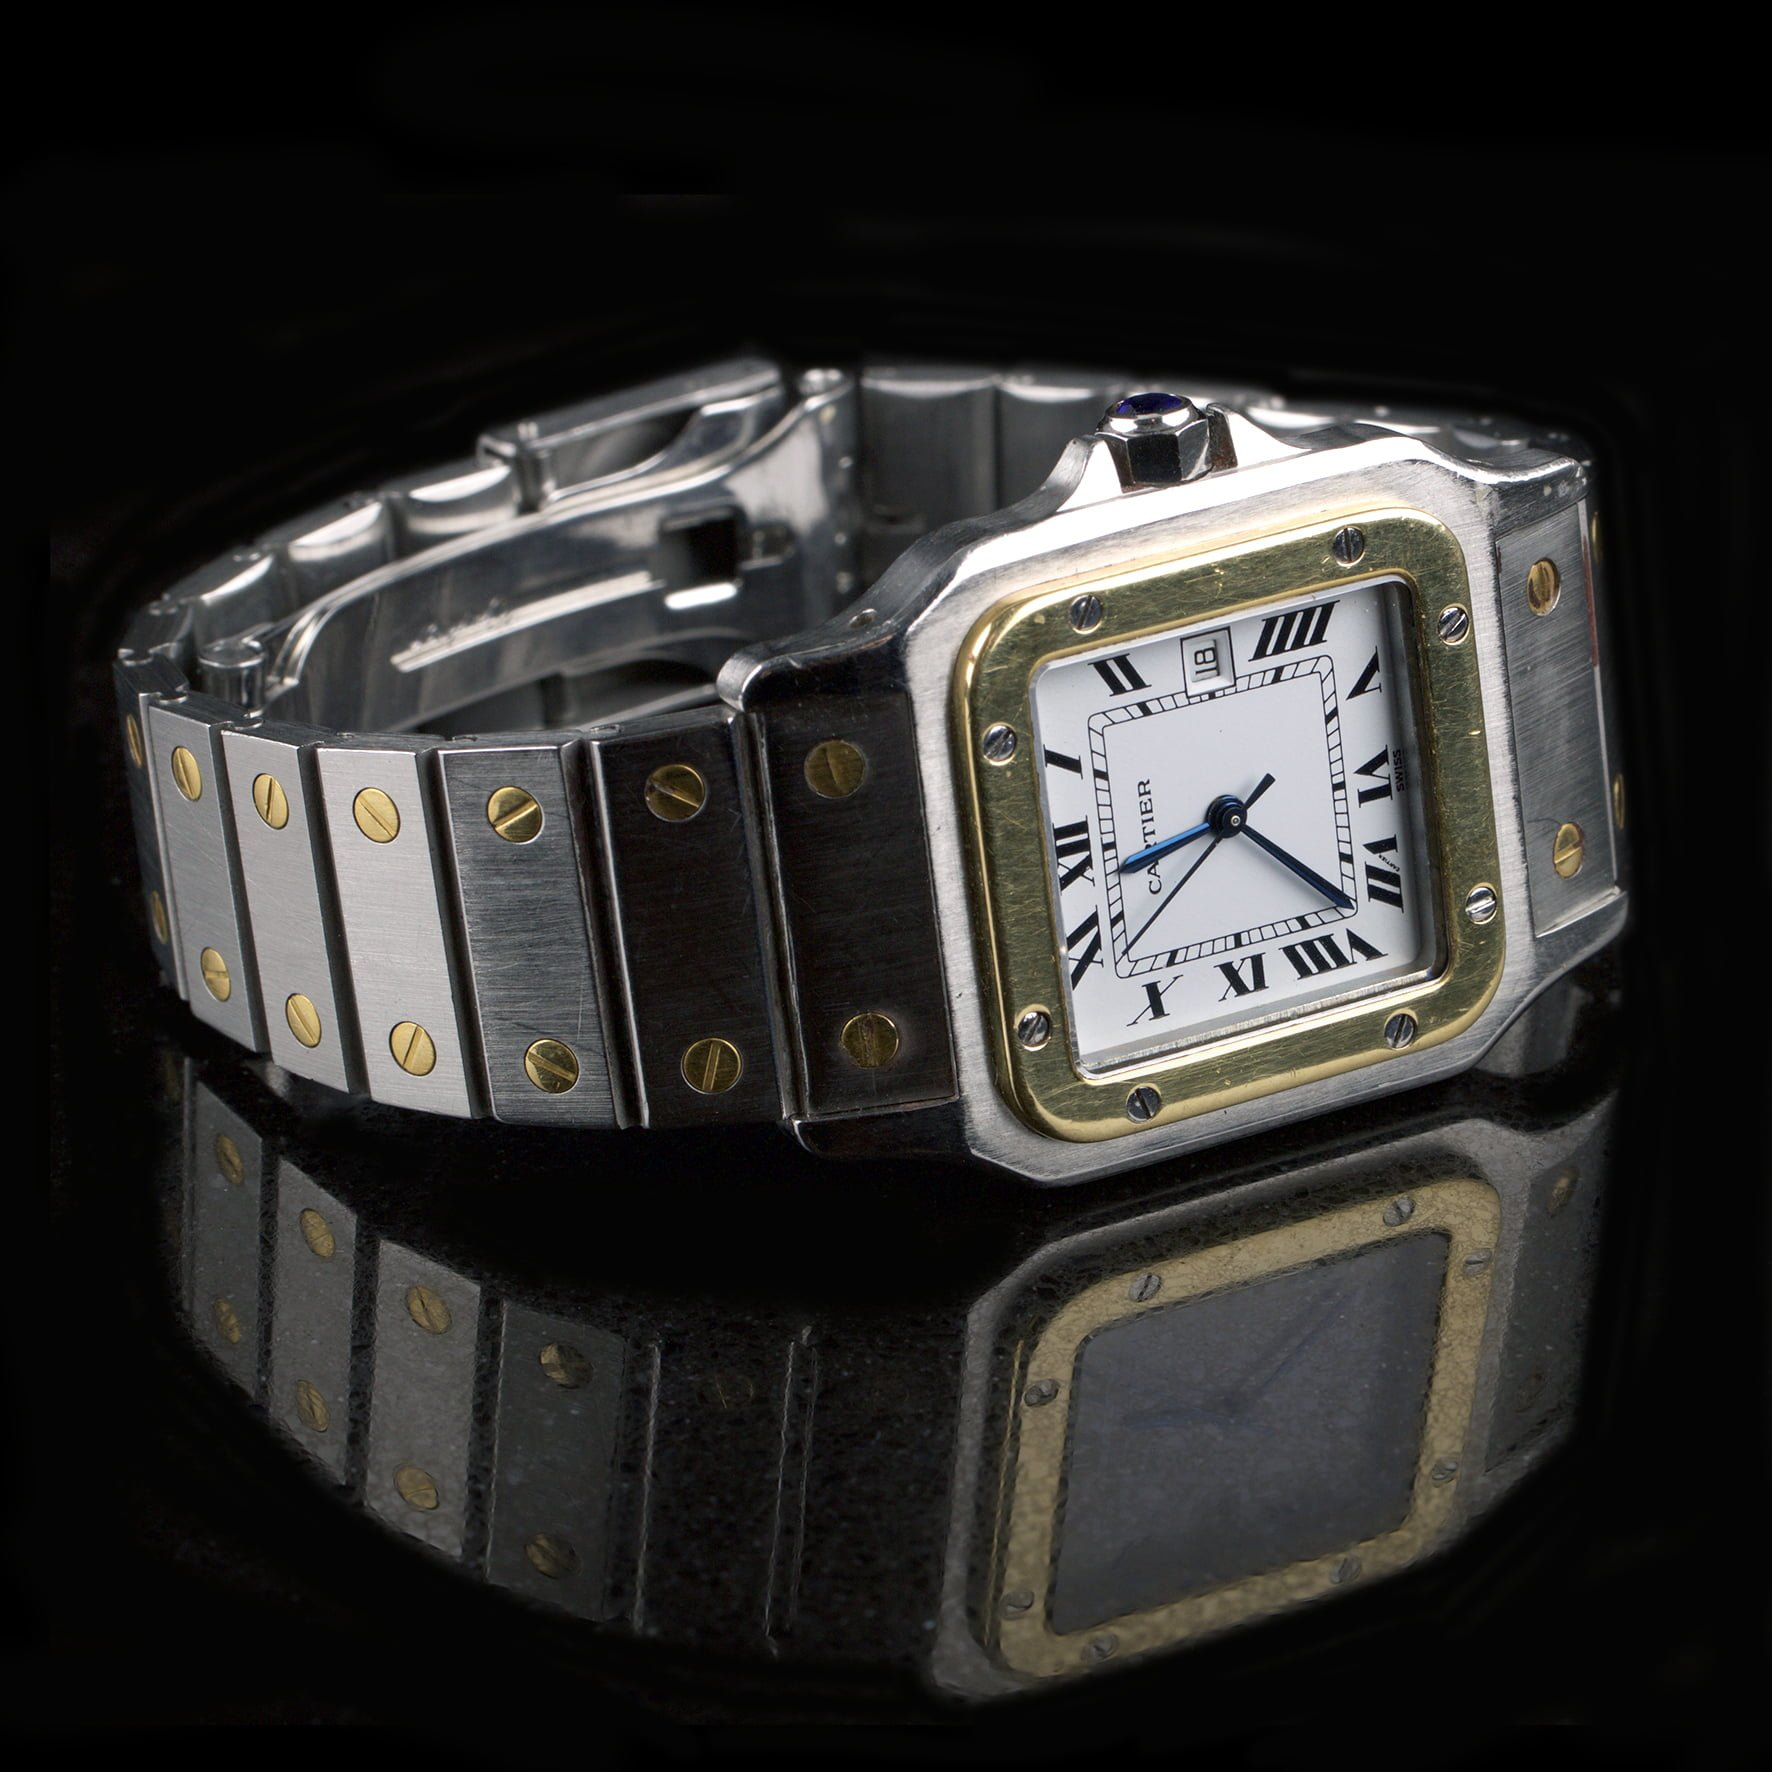 1db481987cd4 Cartier Santos Galbee Reference 4812 - Classic390